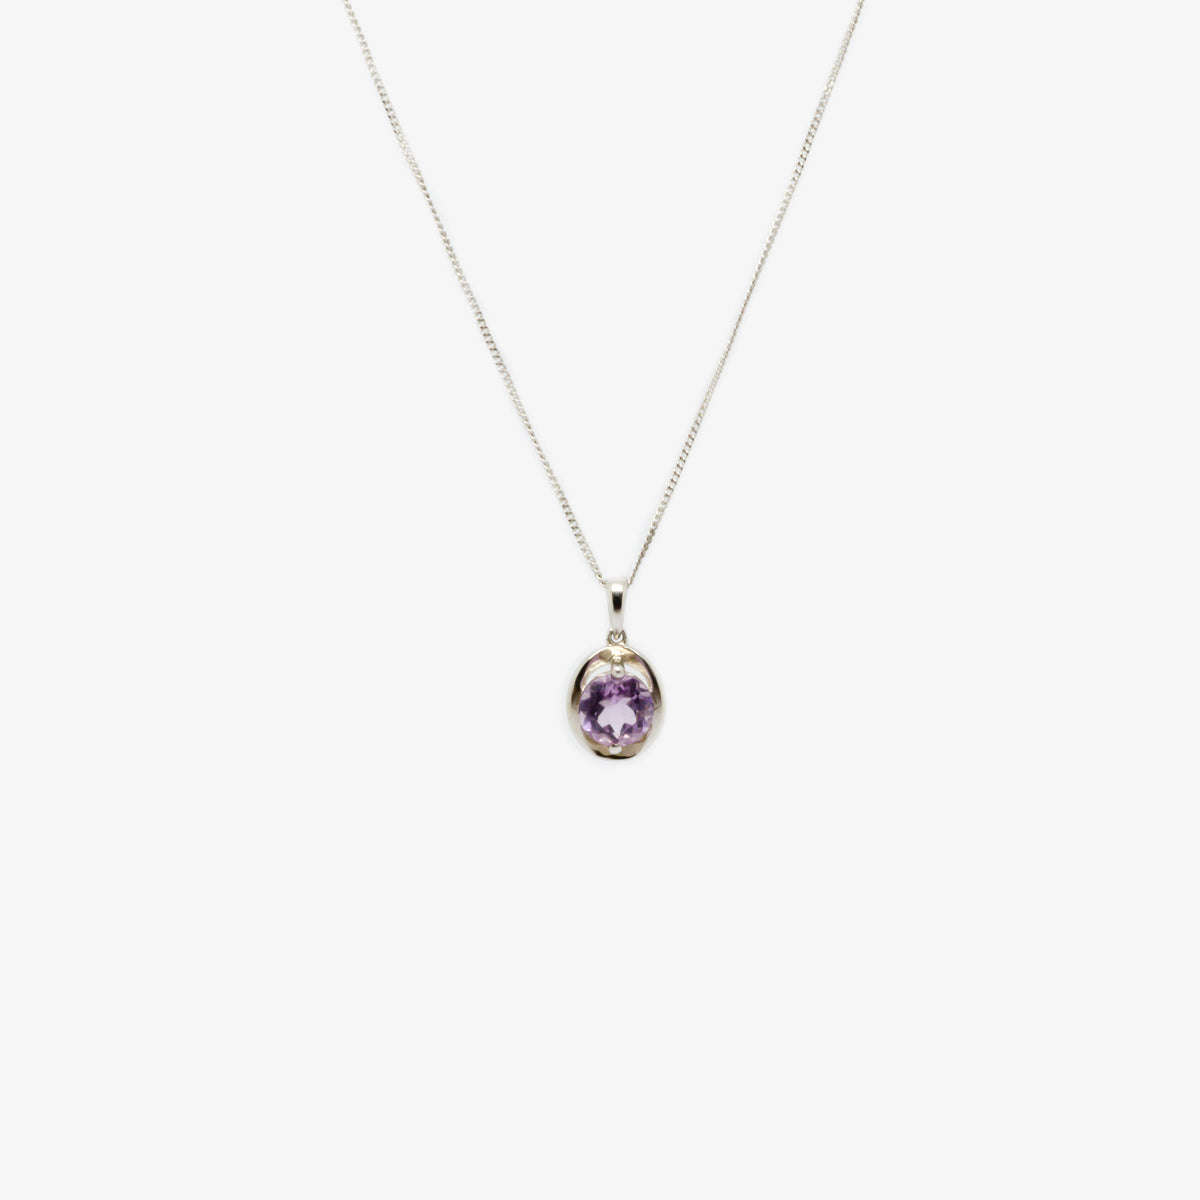 Front picture of the silver amethyst oval pendant necklace.